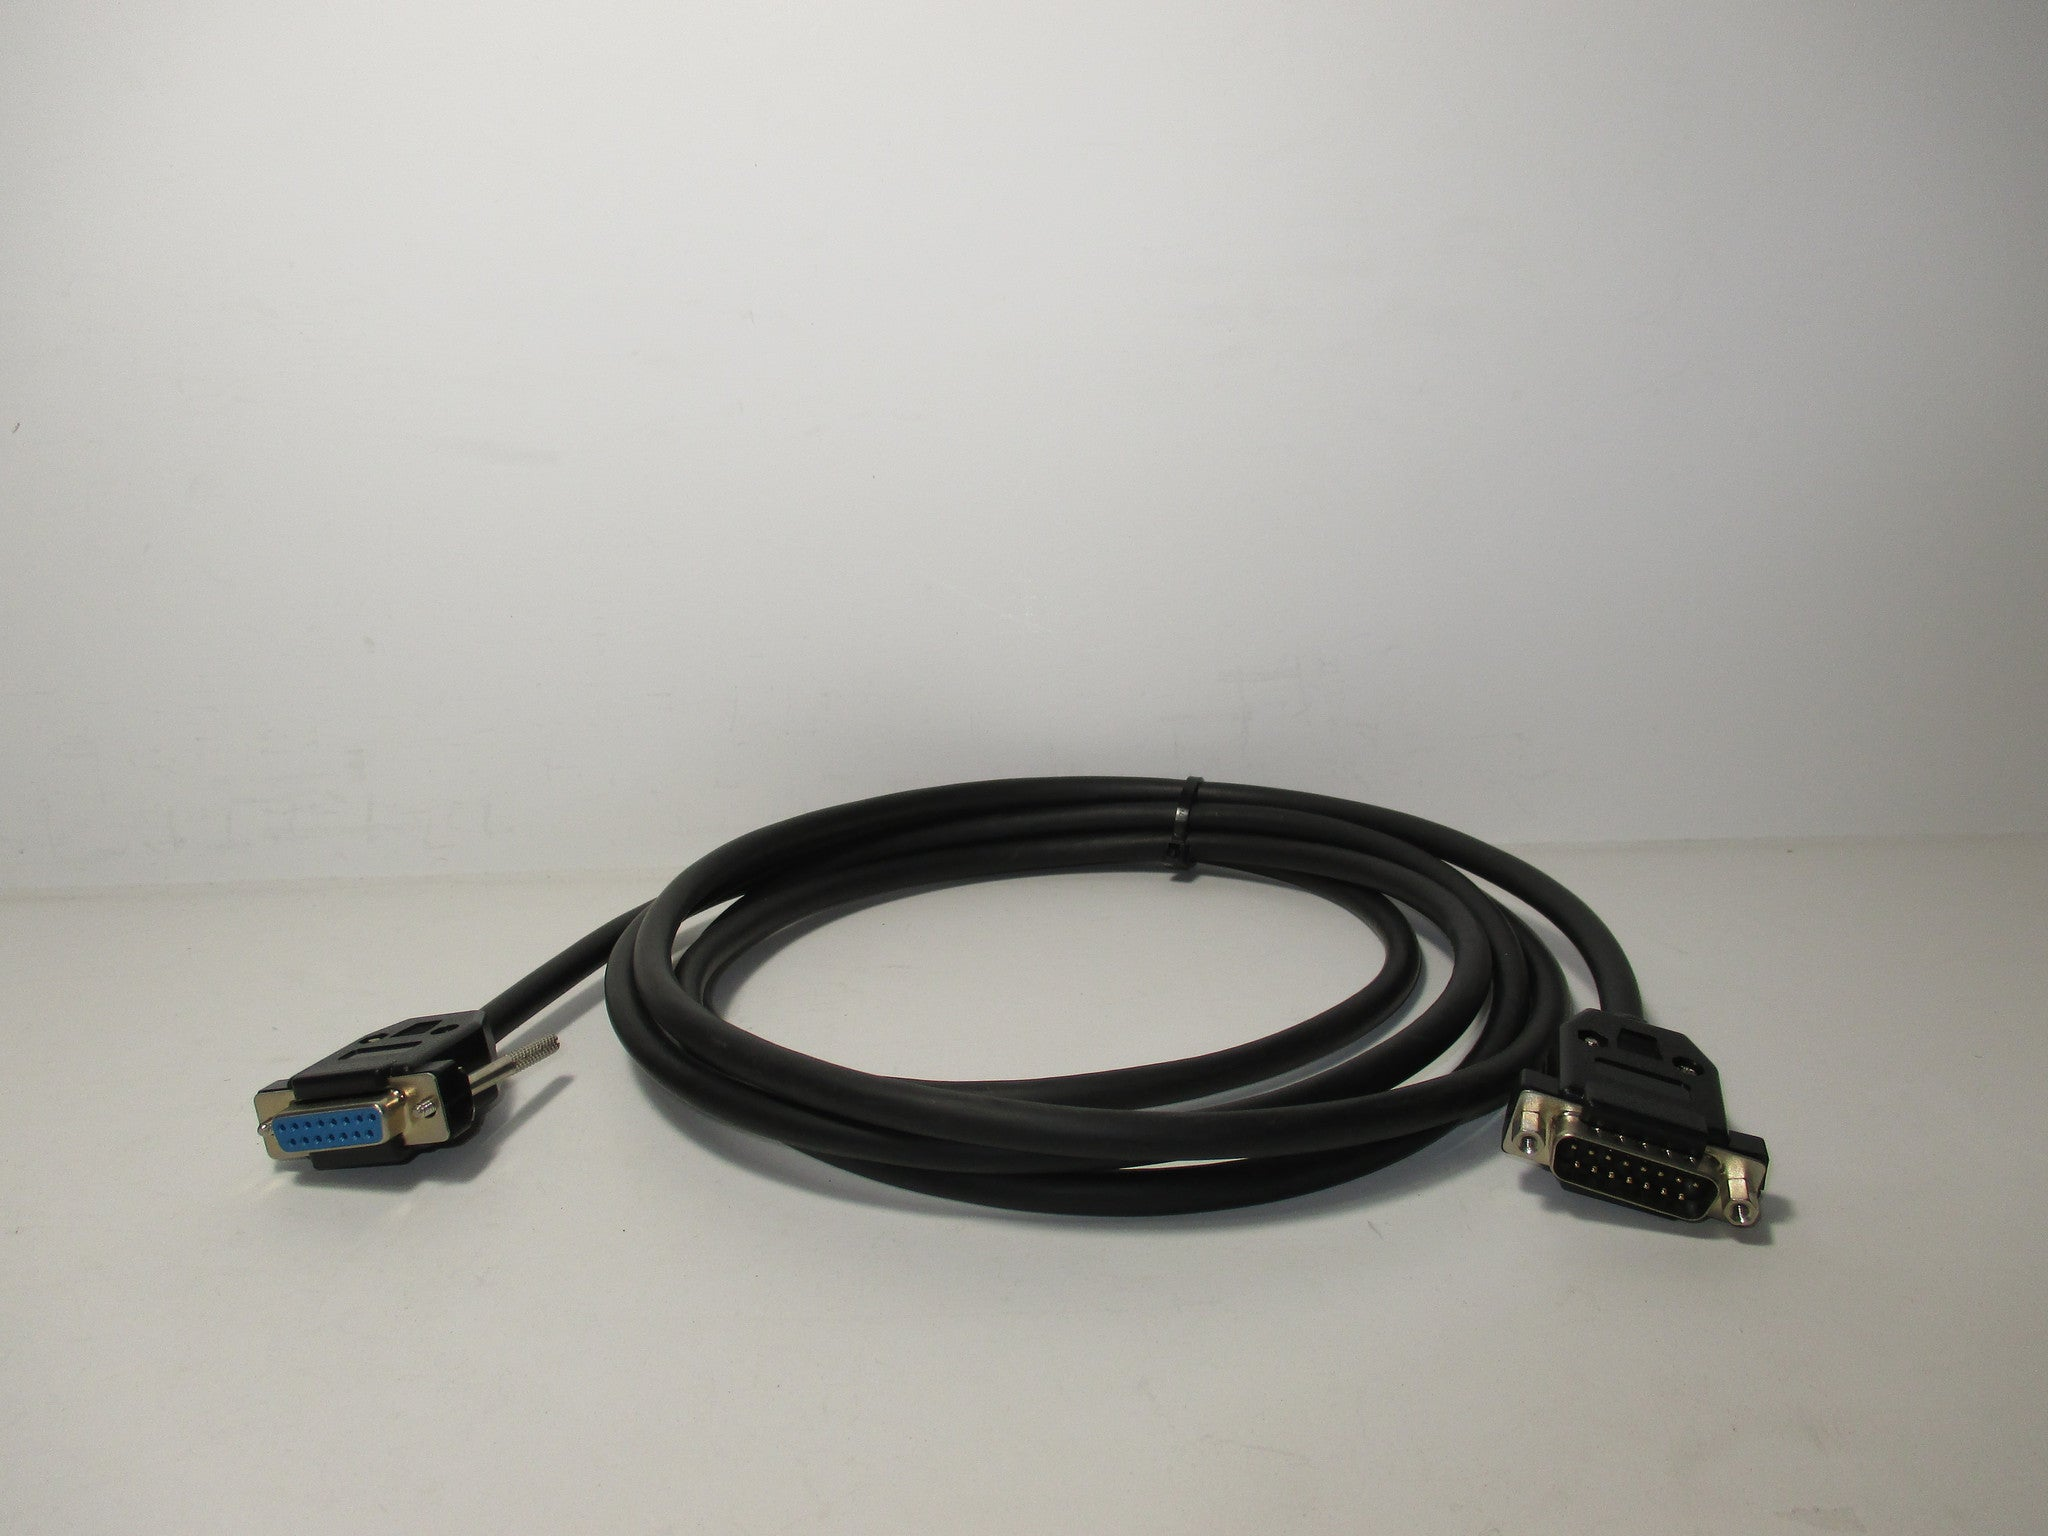 ESP OBDII AND C.A.N. CABLE EXTENSION, 9', P.N. 11031 7 25EXT9